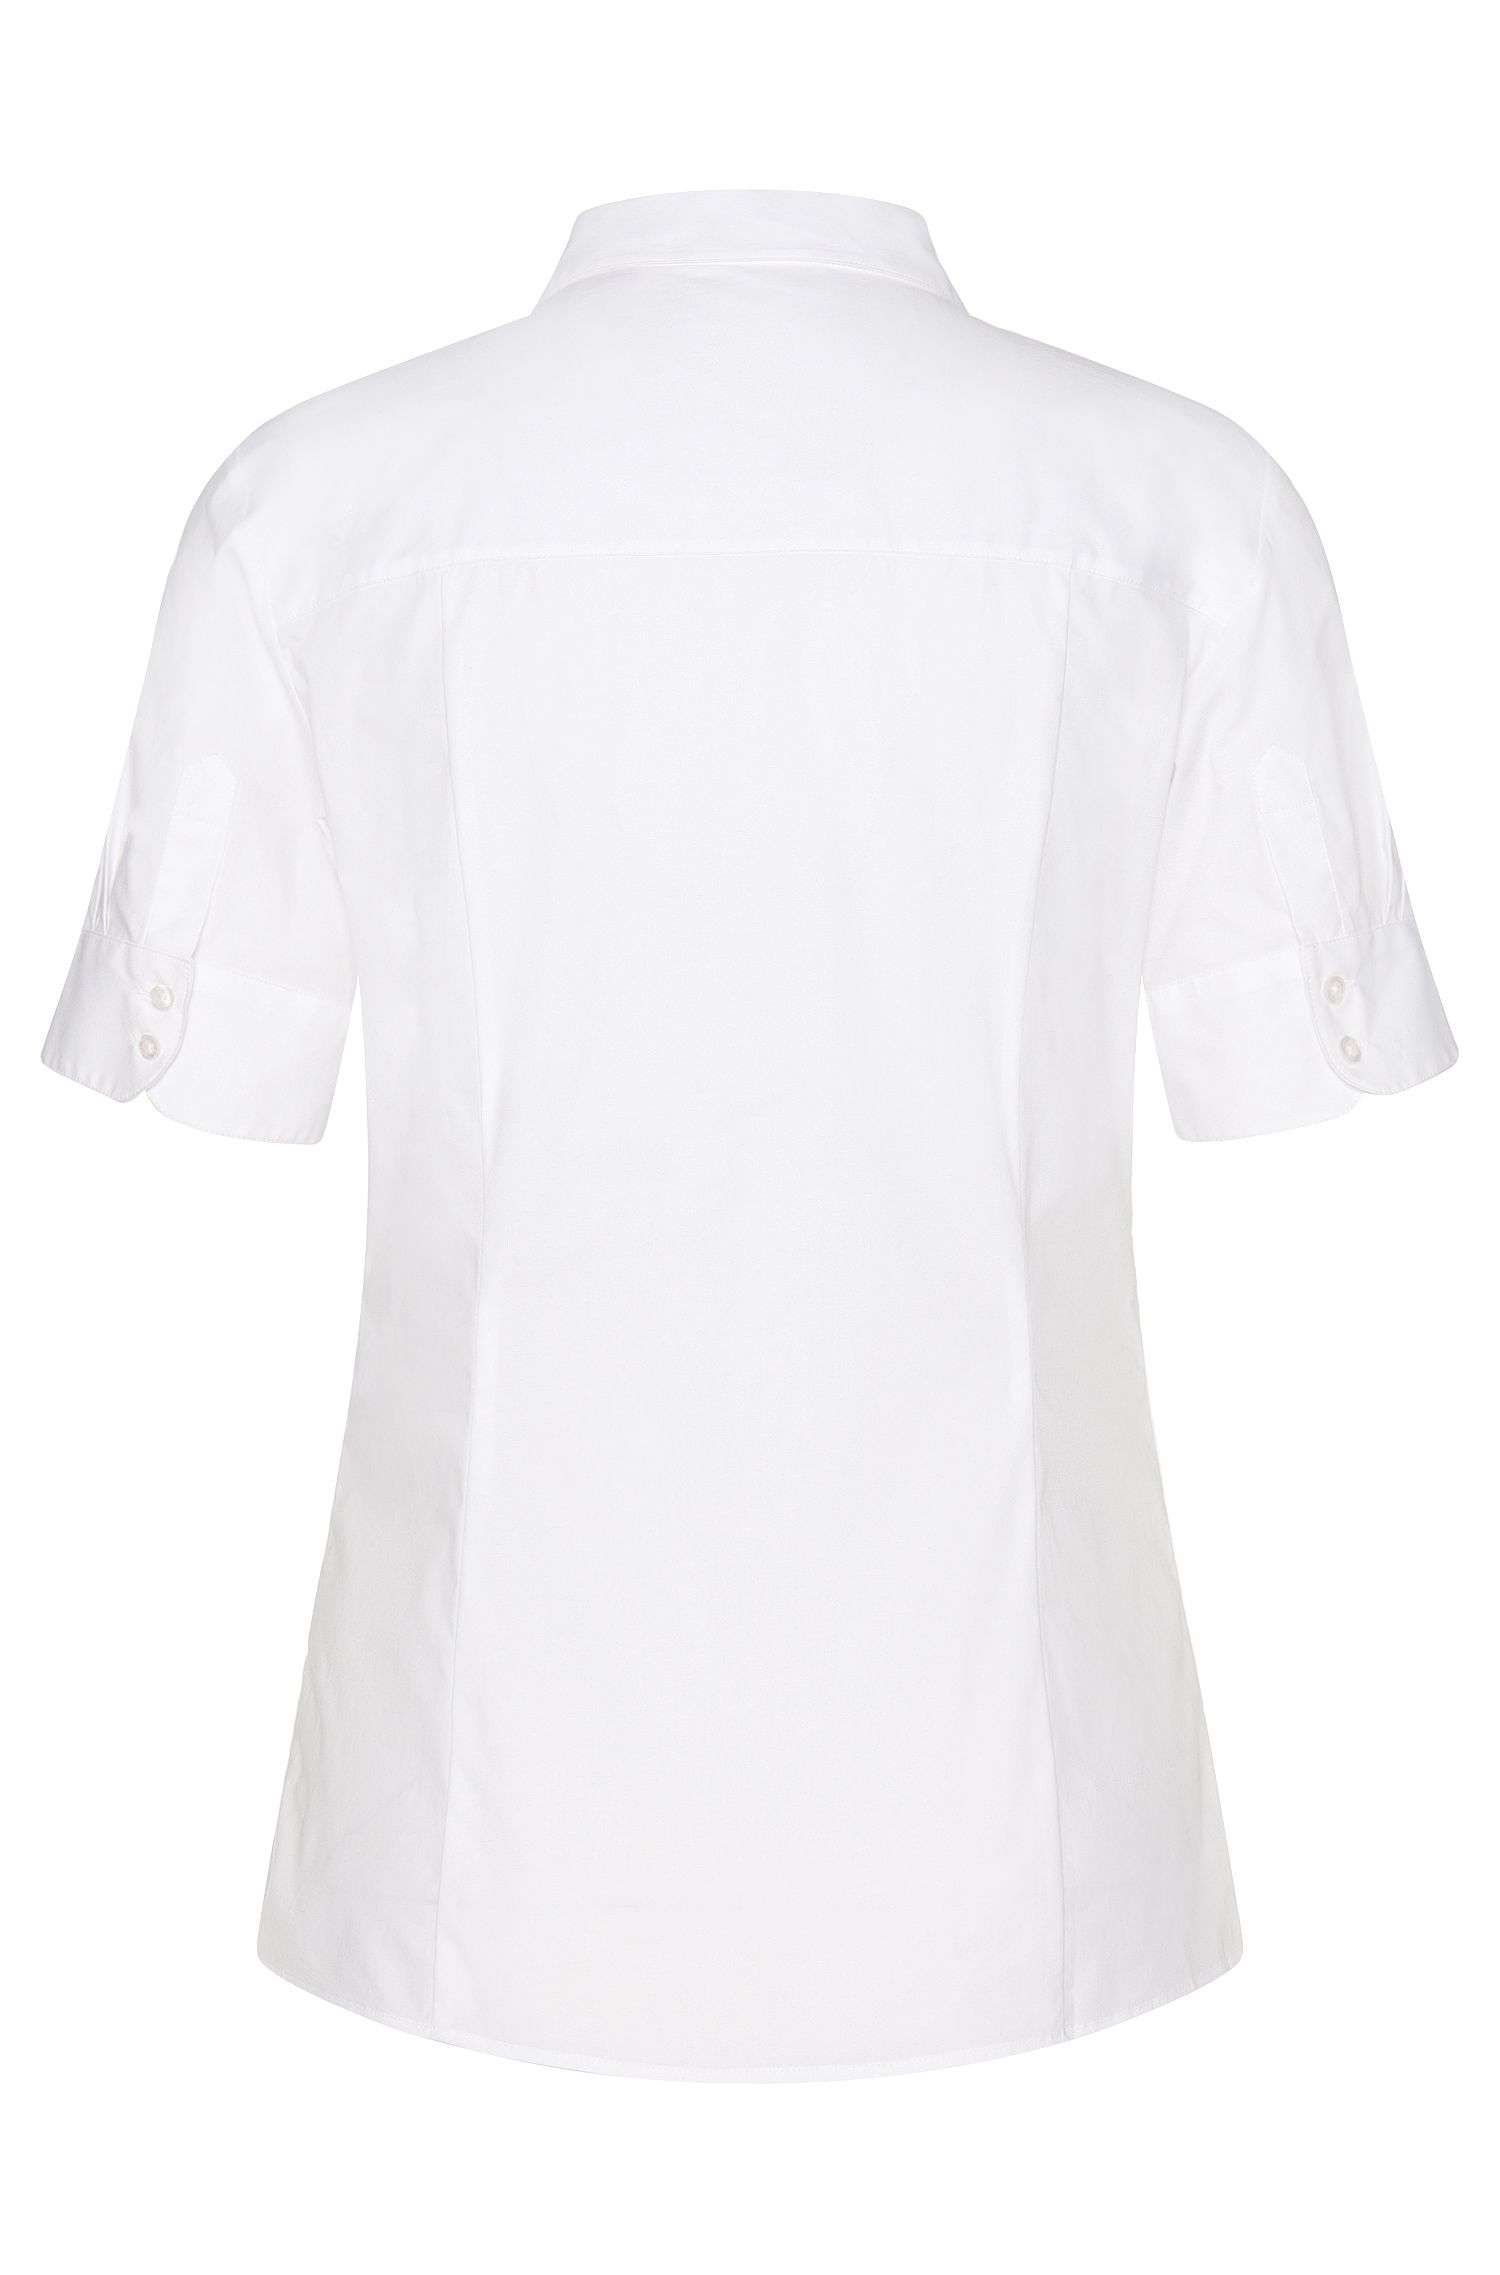 Fitted short-sleeved blouse in stretchy cotton: 'Eshine', White